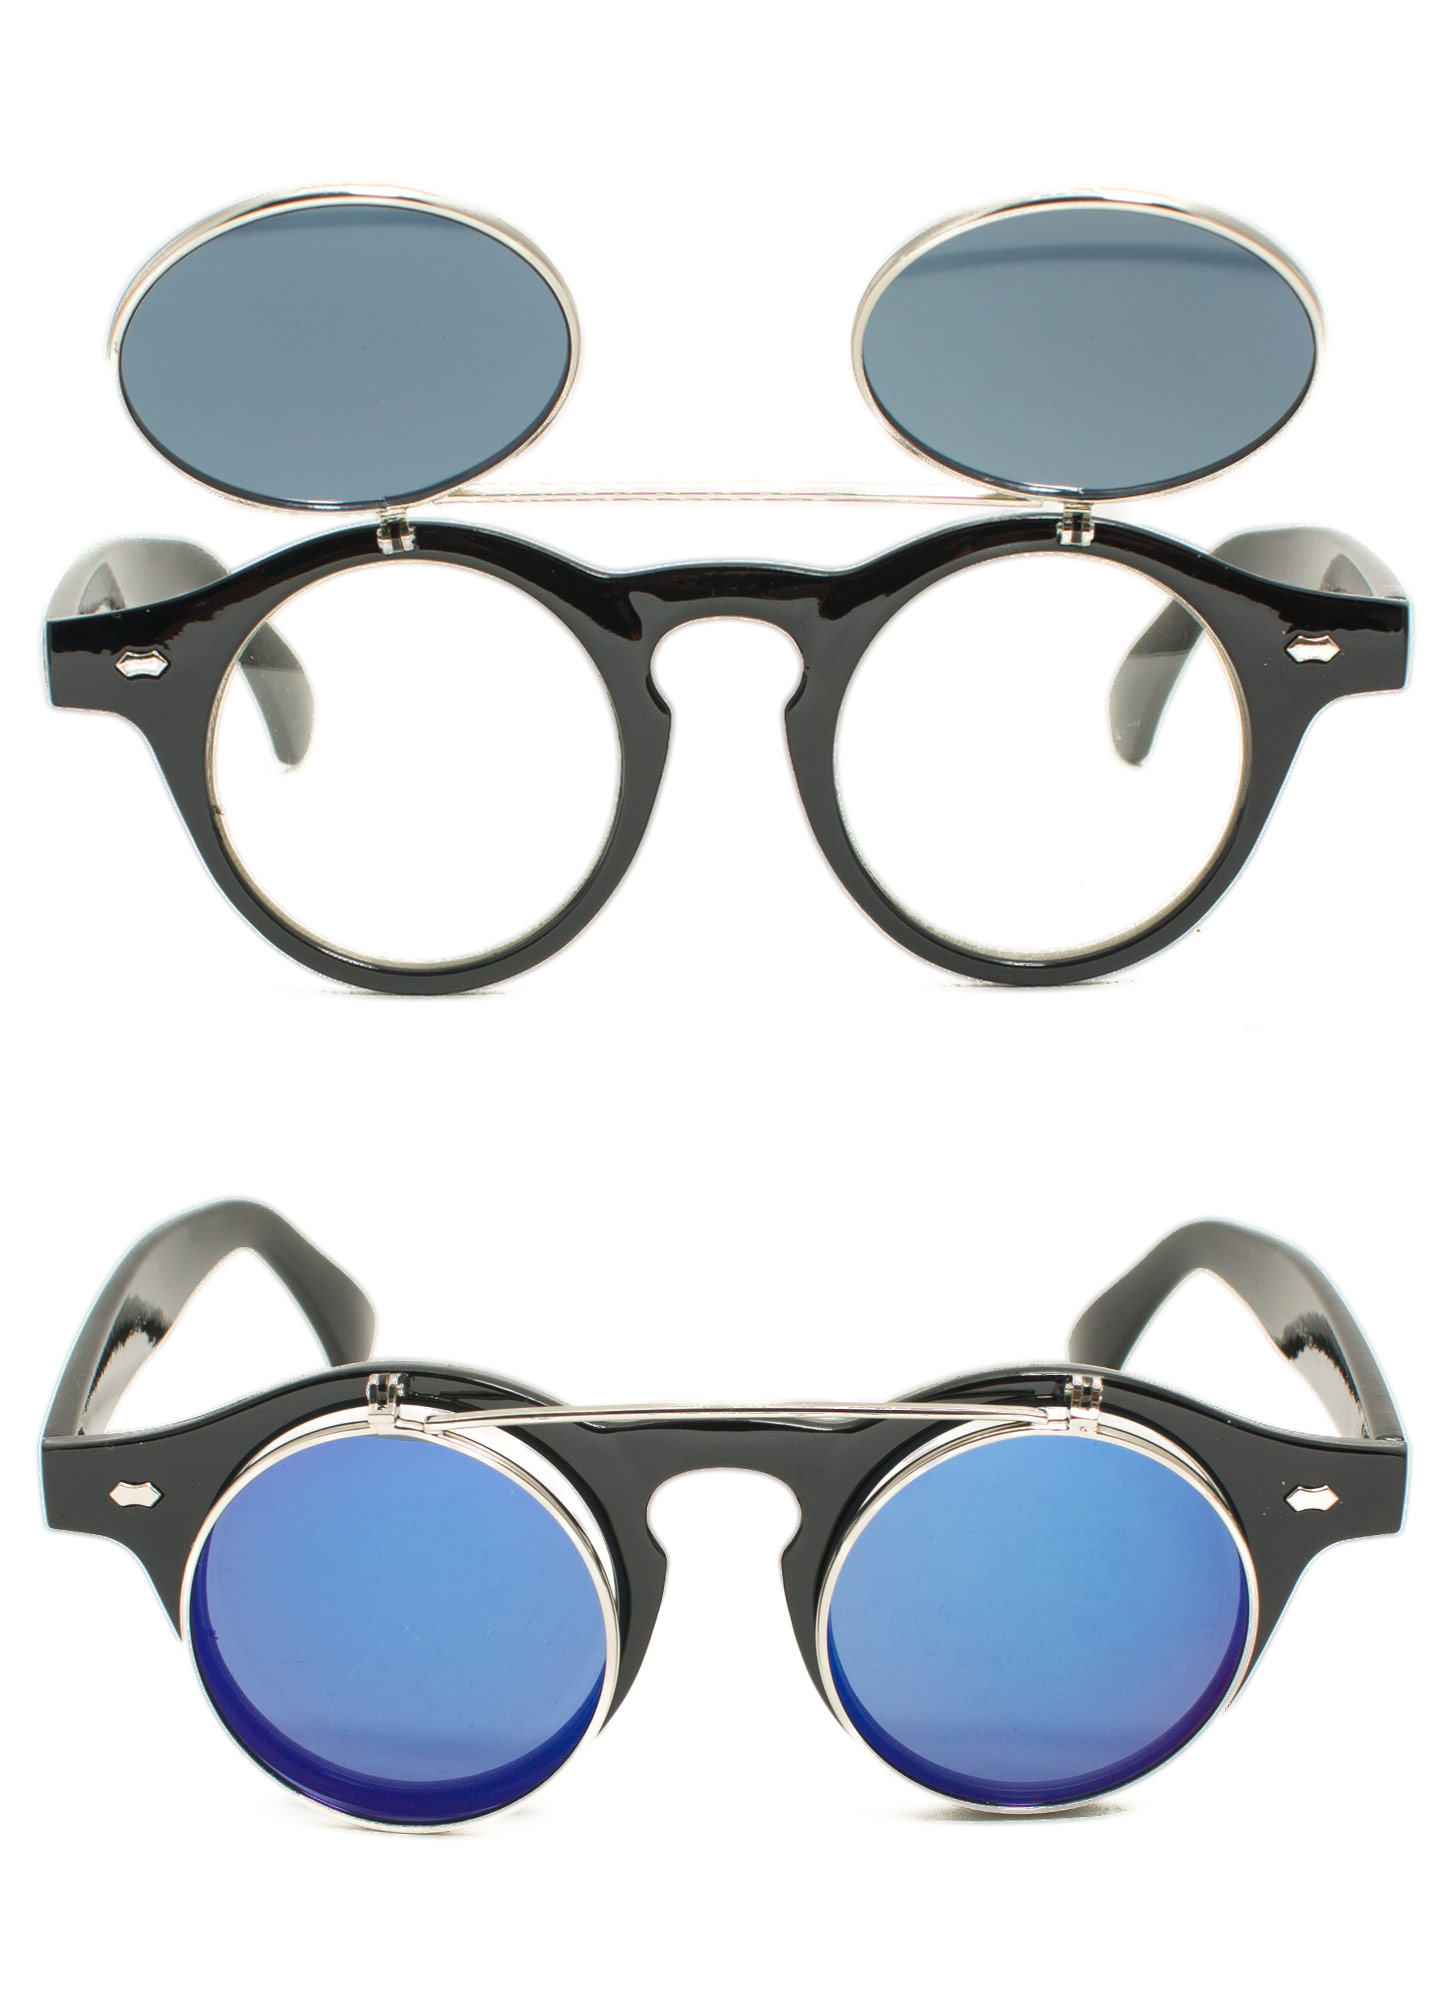 Round Reflective Flip-Up Sunglasses BLUEBLACK